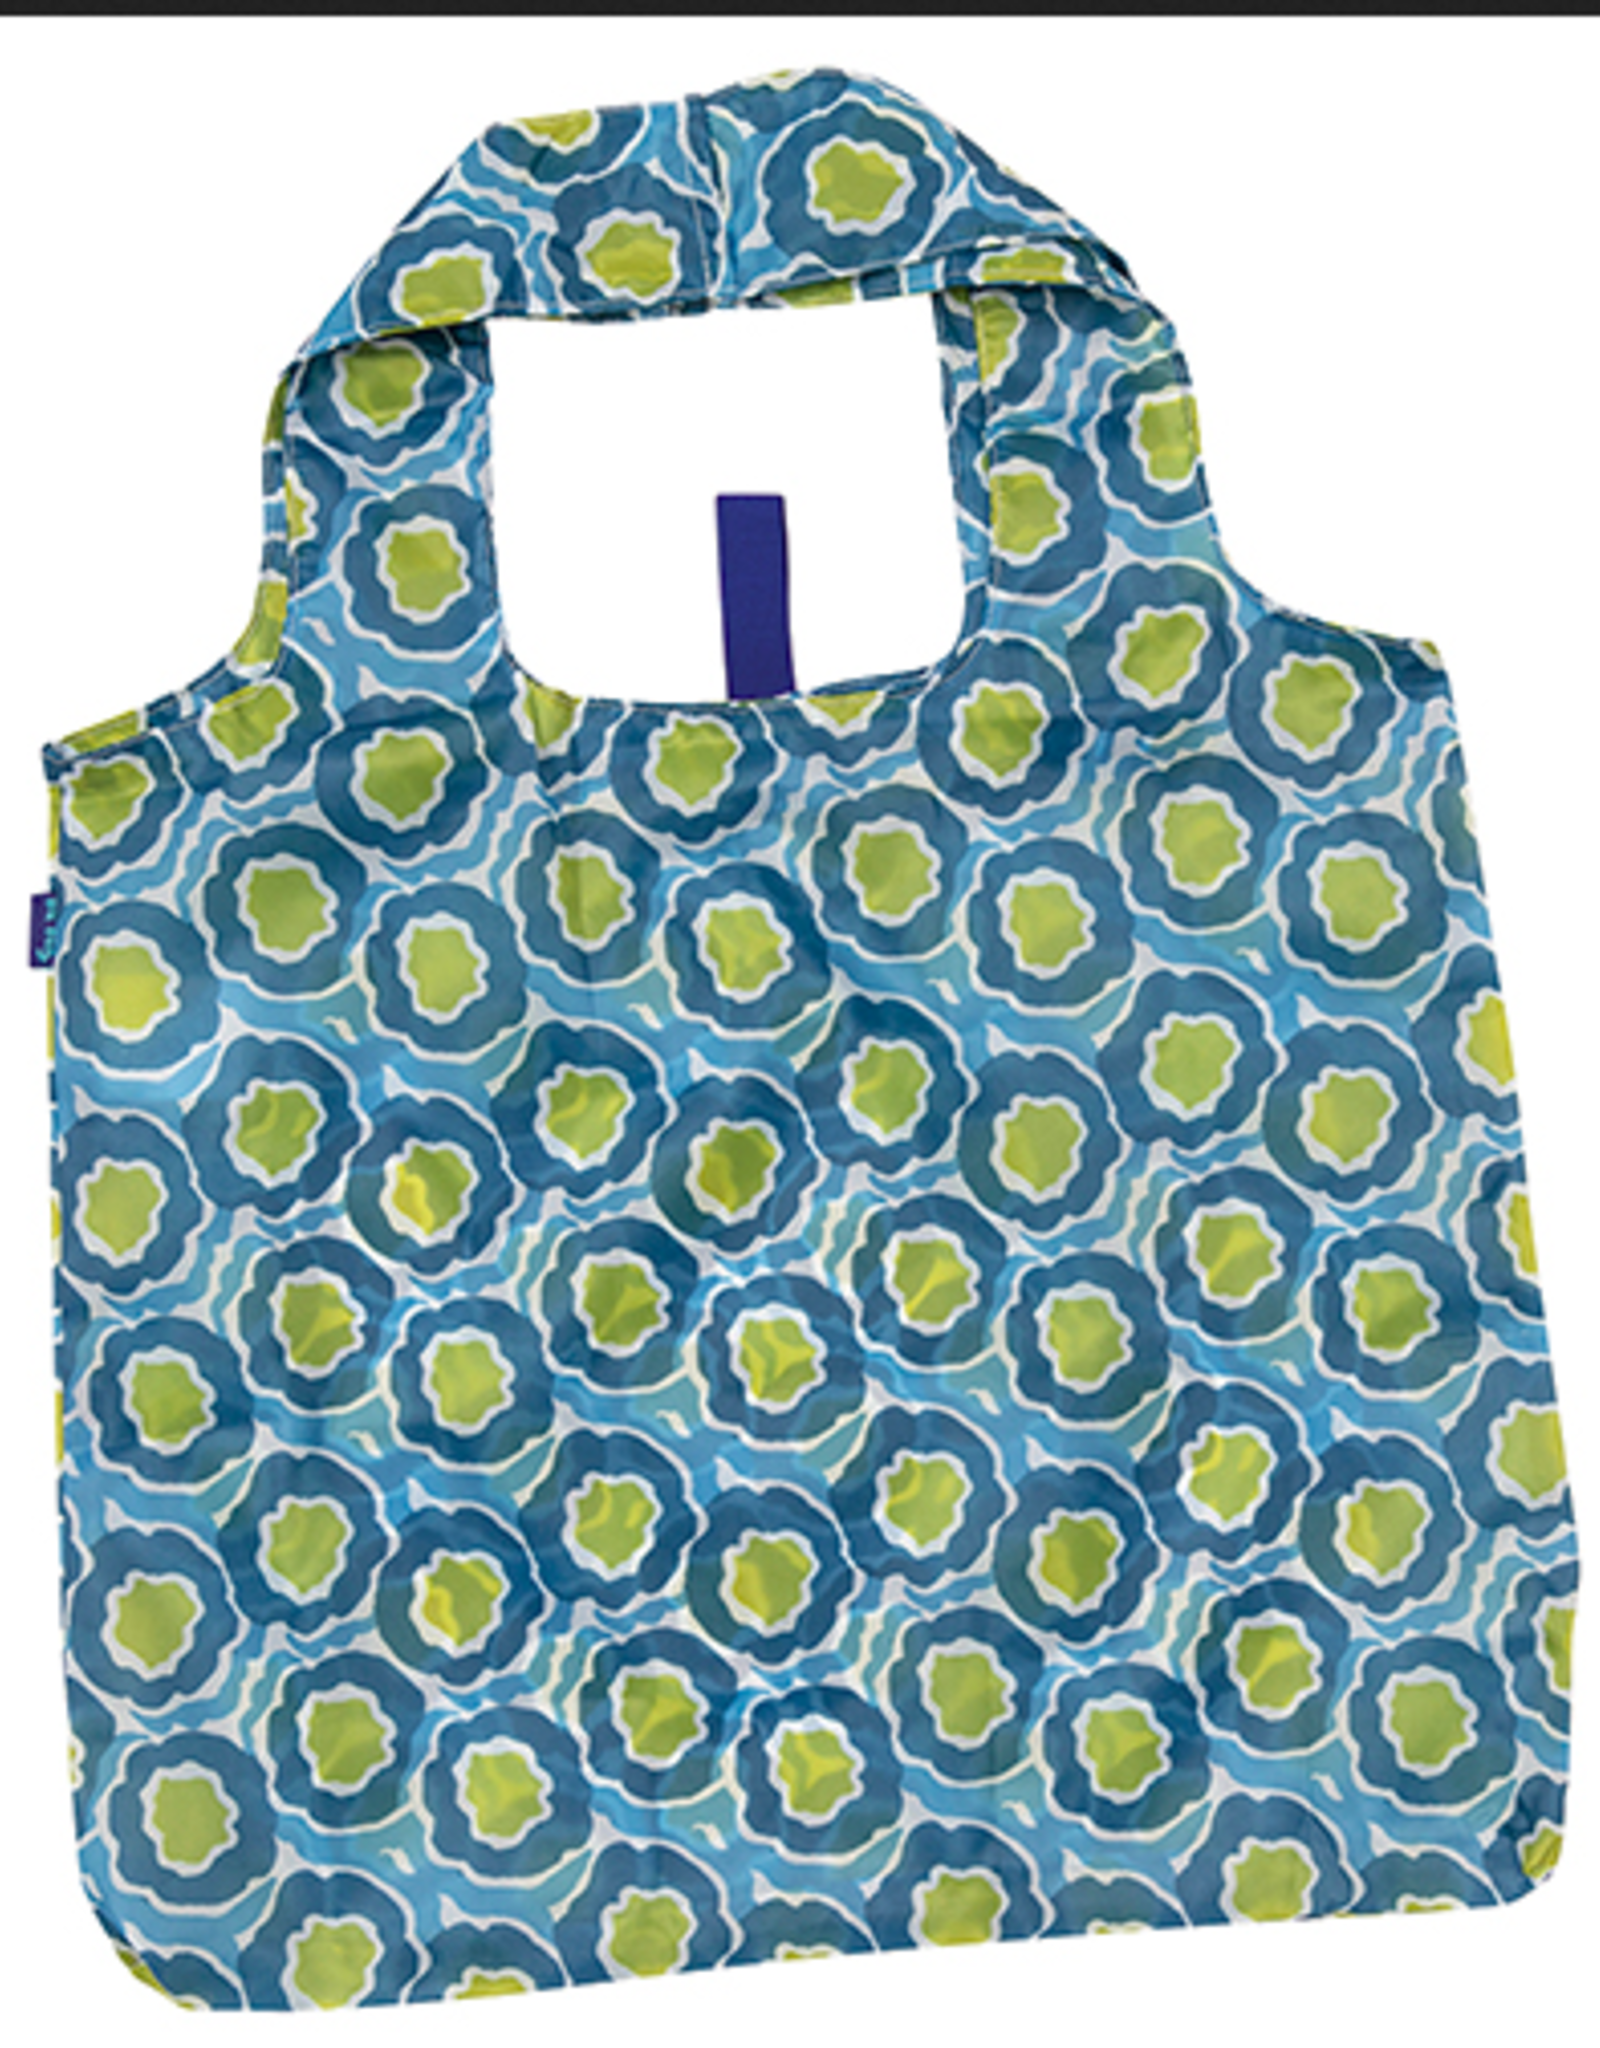 Blu bag reusable/market